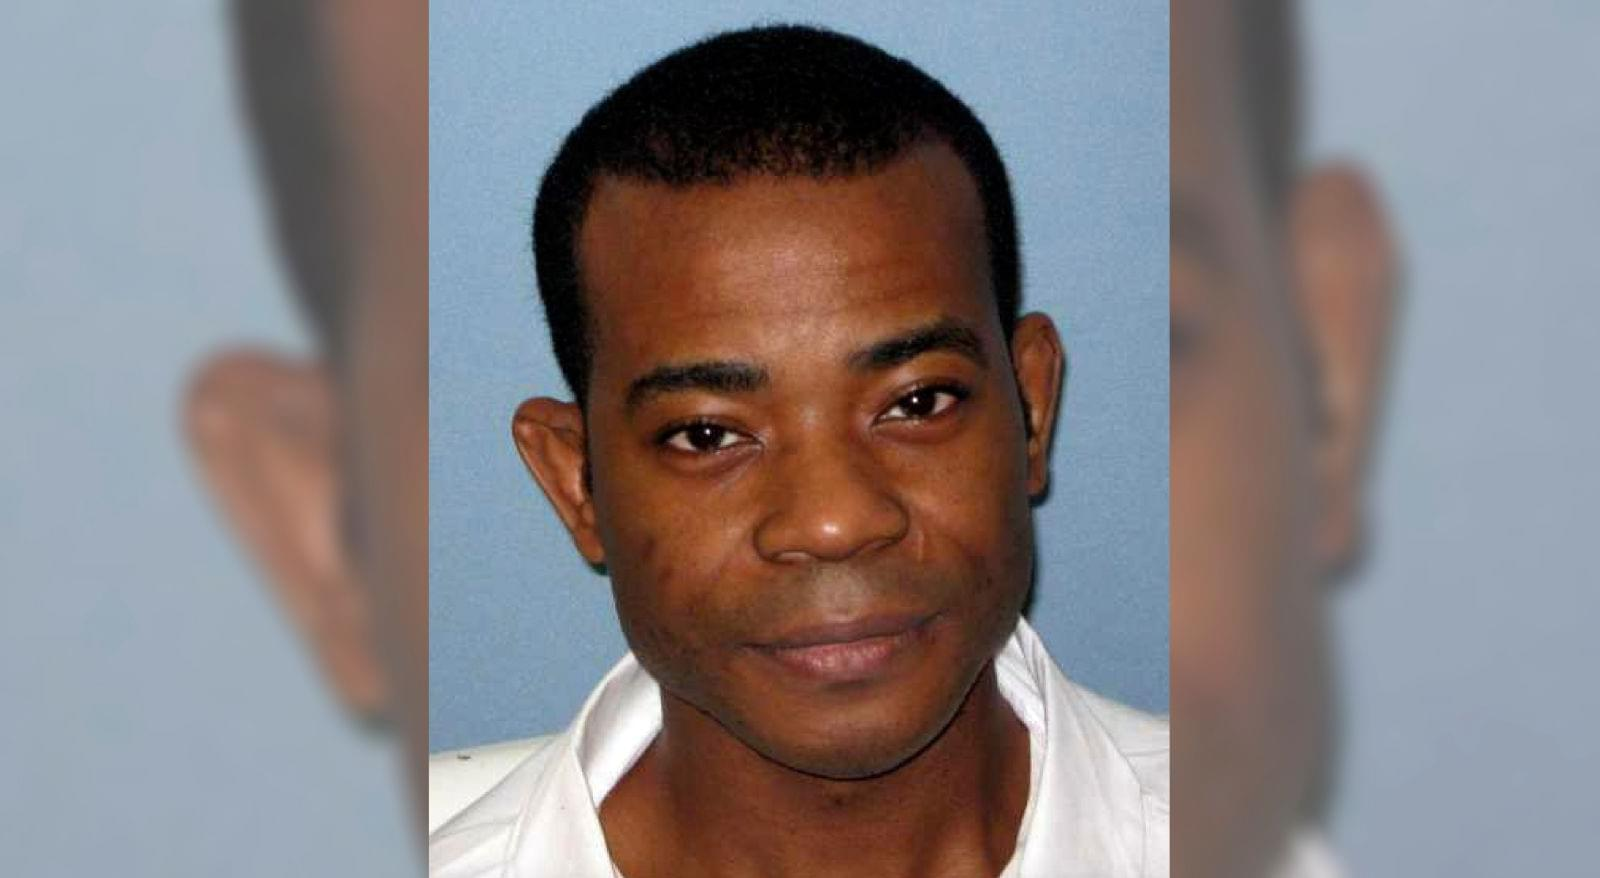 Nate Woods Executed In Alabama Despite Protests From Kim Kardashian, T.I. & Activists